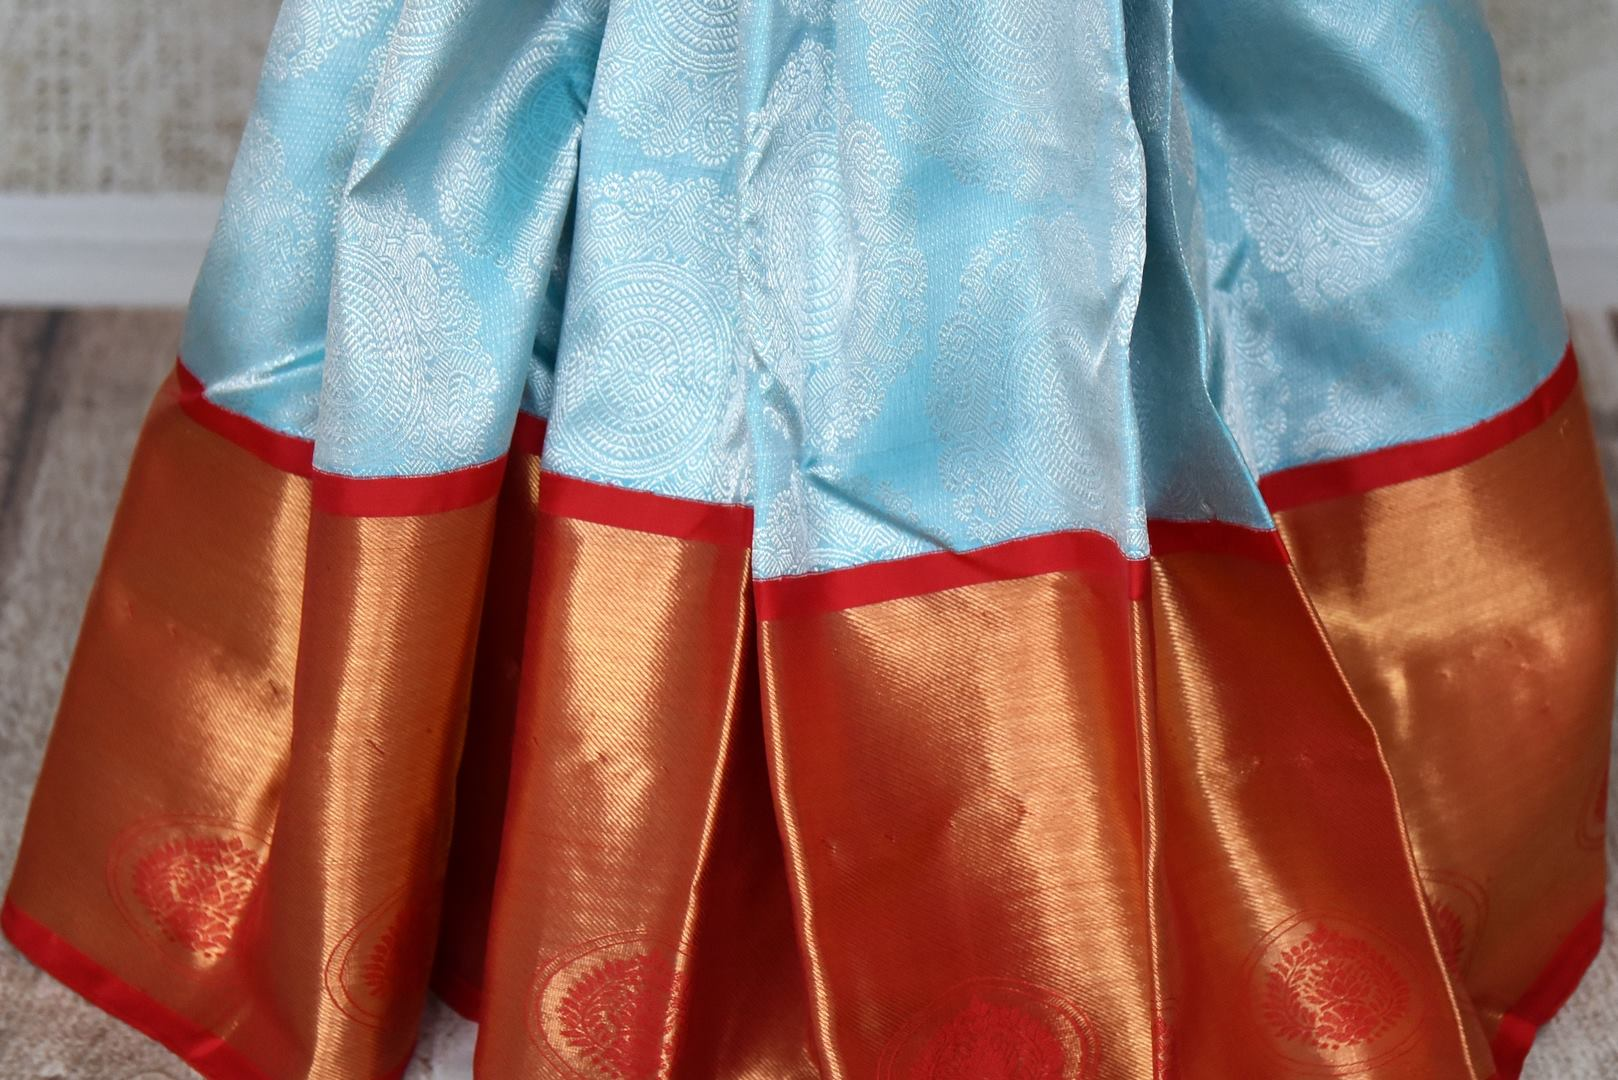 Buy sky blue silver zari saree with red gold zari border online in USA from Pure Elegance. Make your ethnic style perfect with a range of exquisite Indian designer saris with blouses, embroidered sarees, pure handloom sarees available at our exclusive Indian fashion store in USA and also on our online store. Shop now.-pleats